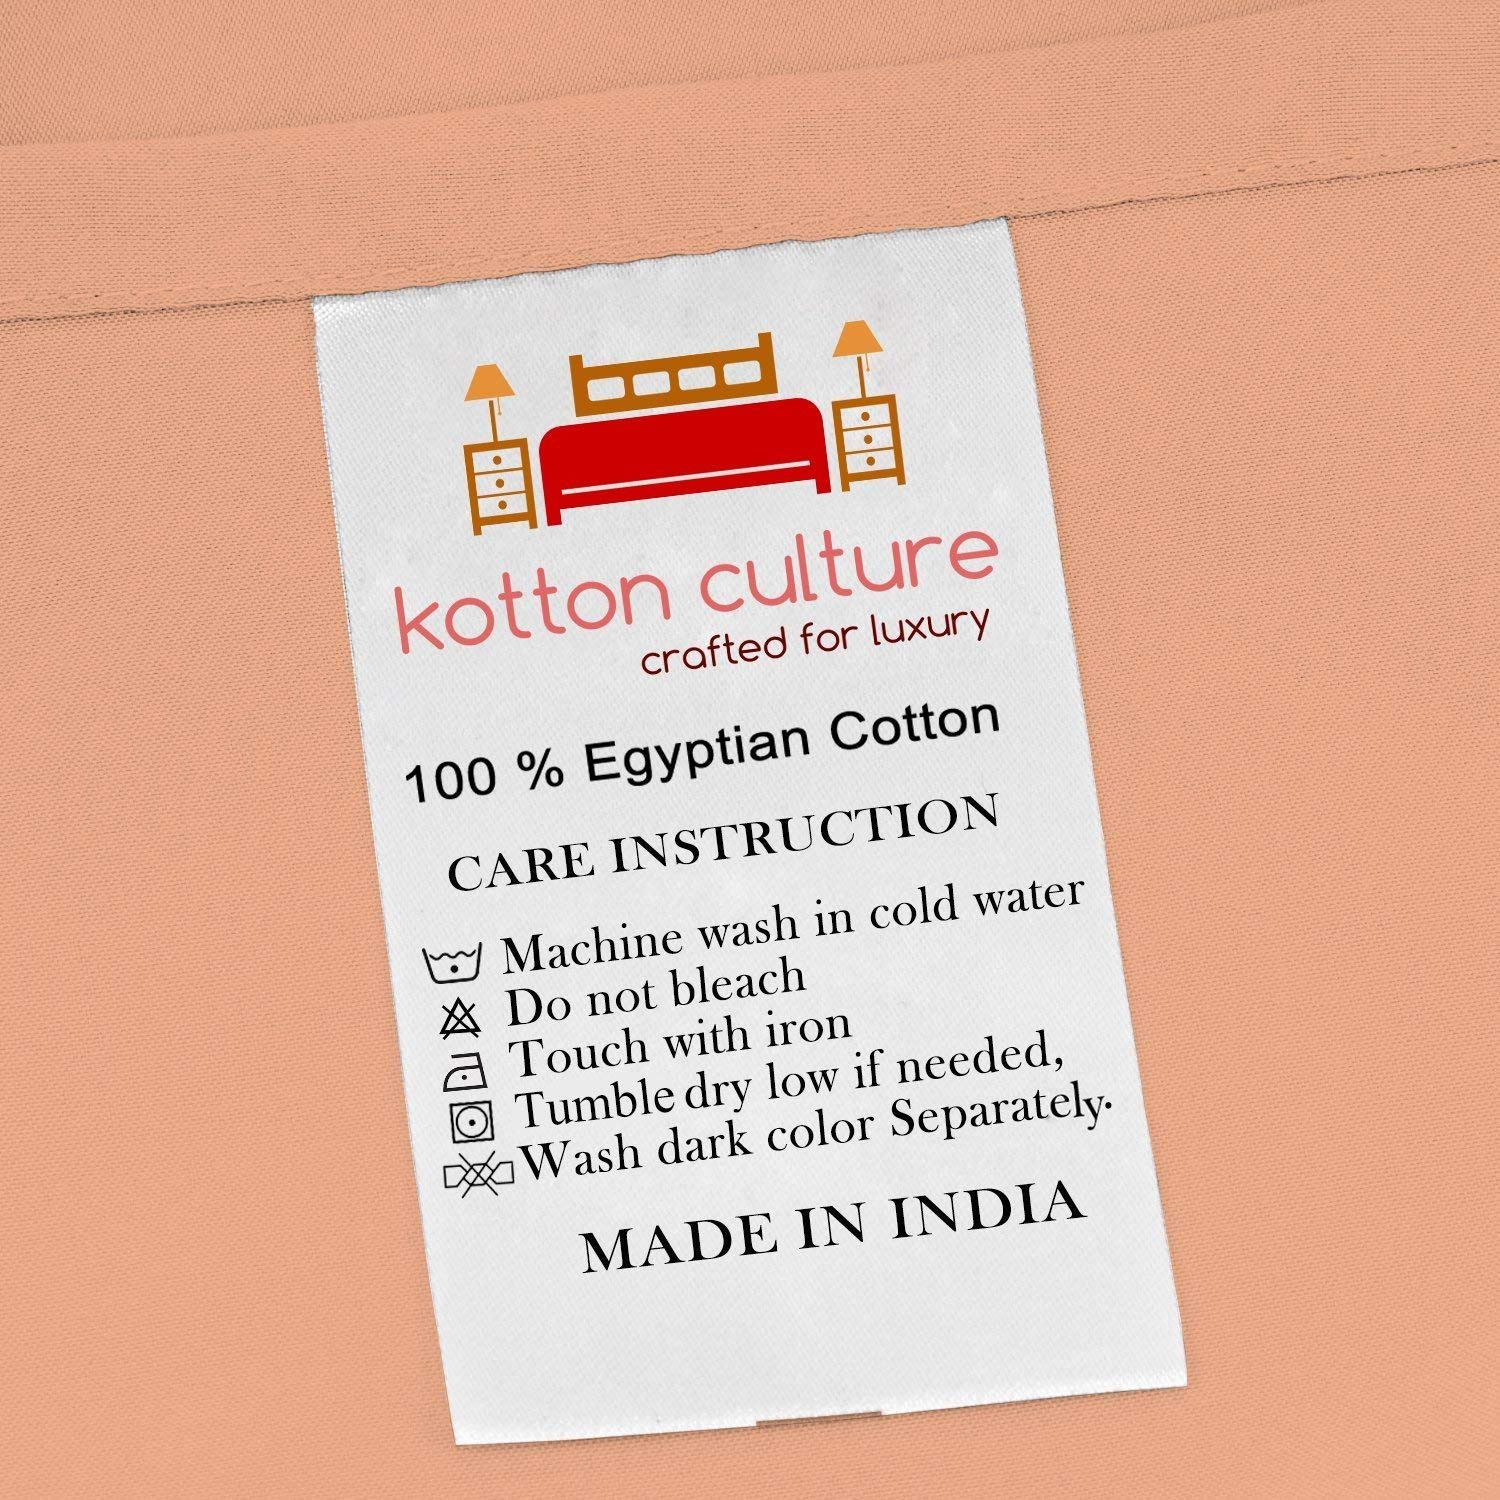 Kotton Culture Premium Duvet Cover 100% Egyptian Cotton 600 Thread Count with Zipper & Corner Ties Luxurious Hotel Collection (Oversized King, Peach) by Kotton Culture (Image #3)